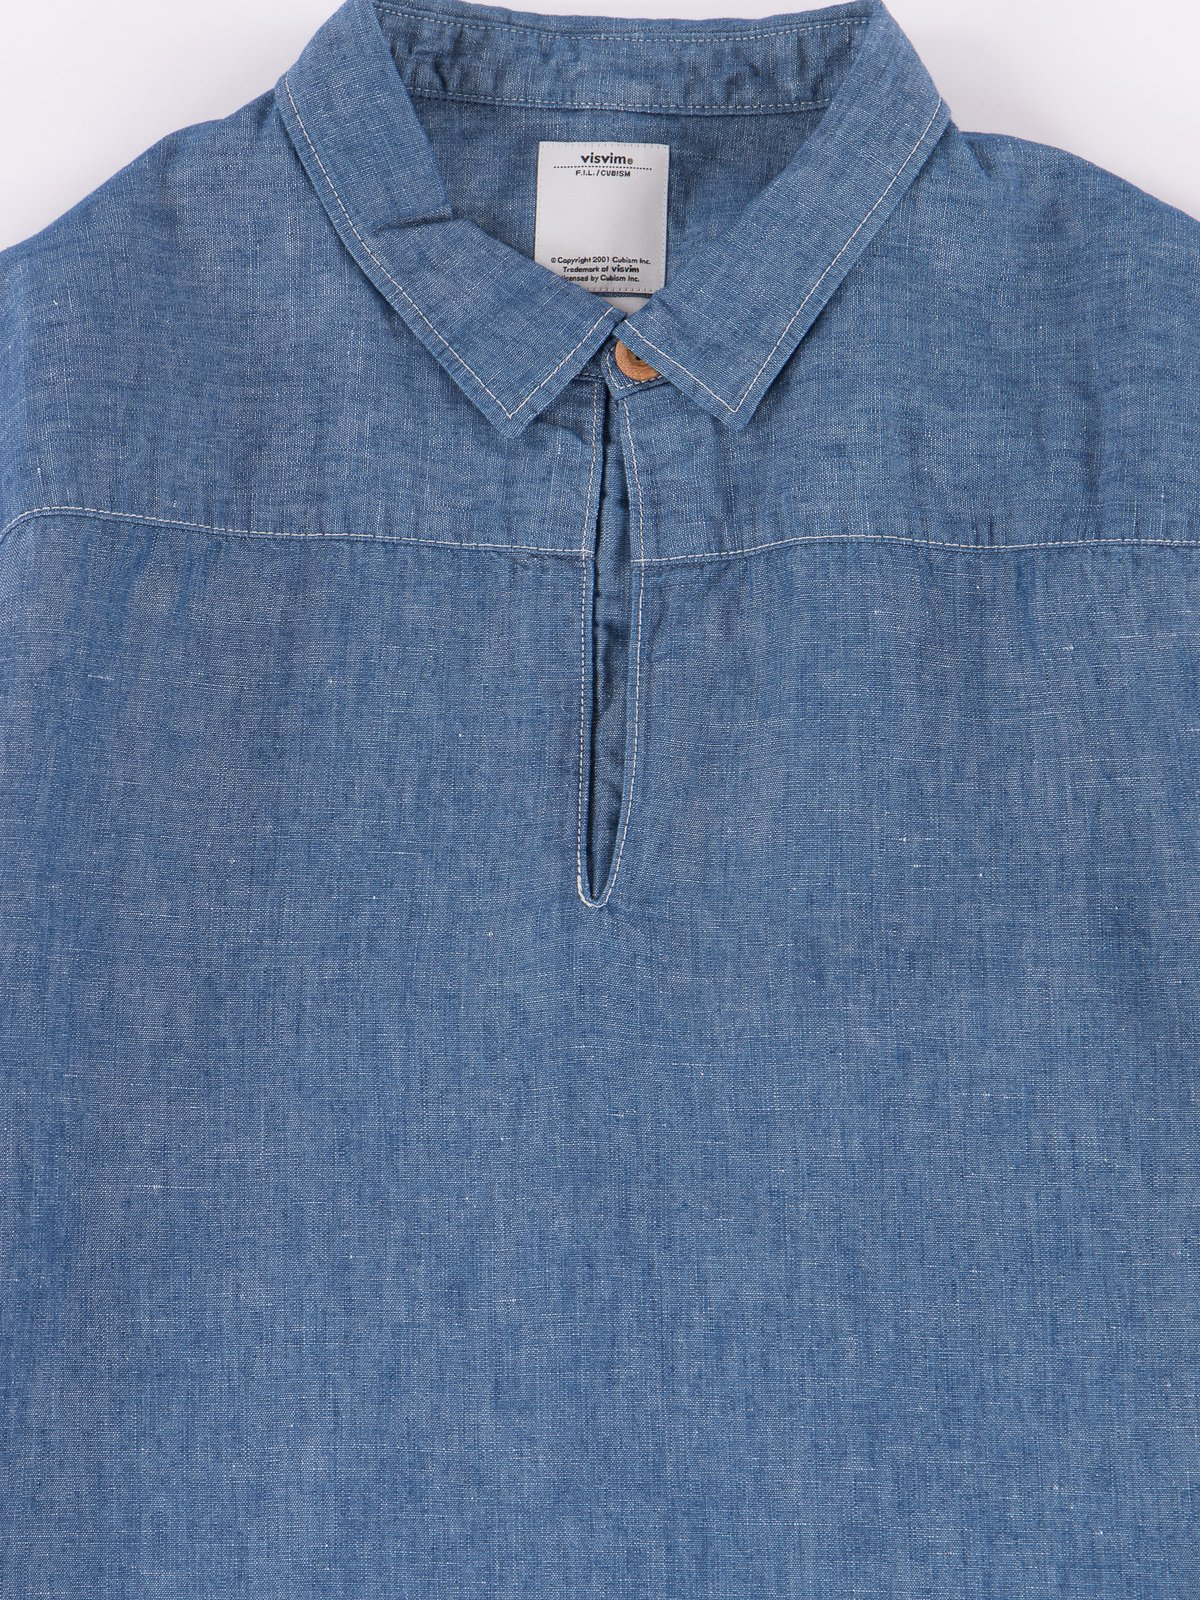 Blue Chambray Kerchief Tunic Shirt - Image 2